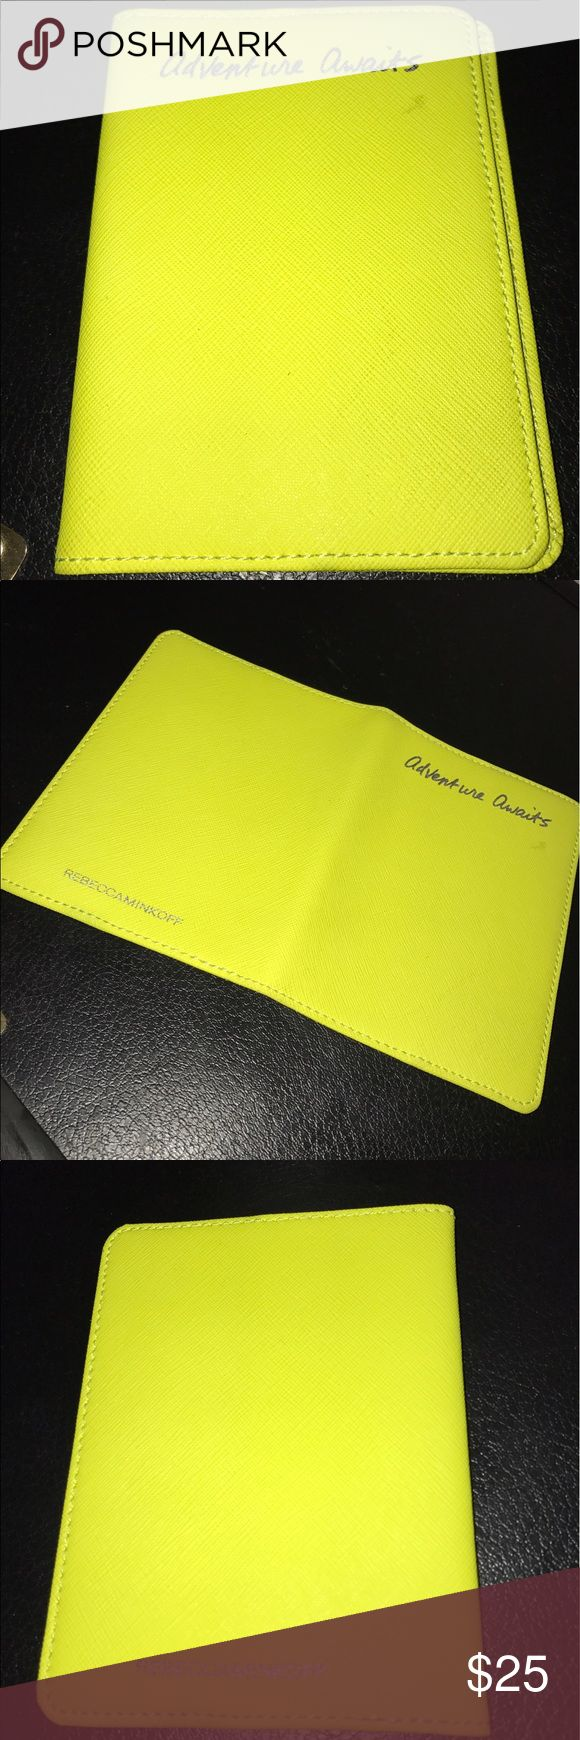 Rebecca Minkoff passport holder Neon yellow passport holder in great condition overall. Small mark on front cover as shown in the picture. Rebecca Minkoff Accessories Key & Card Holders